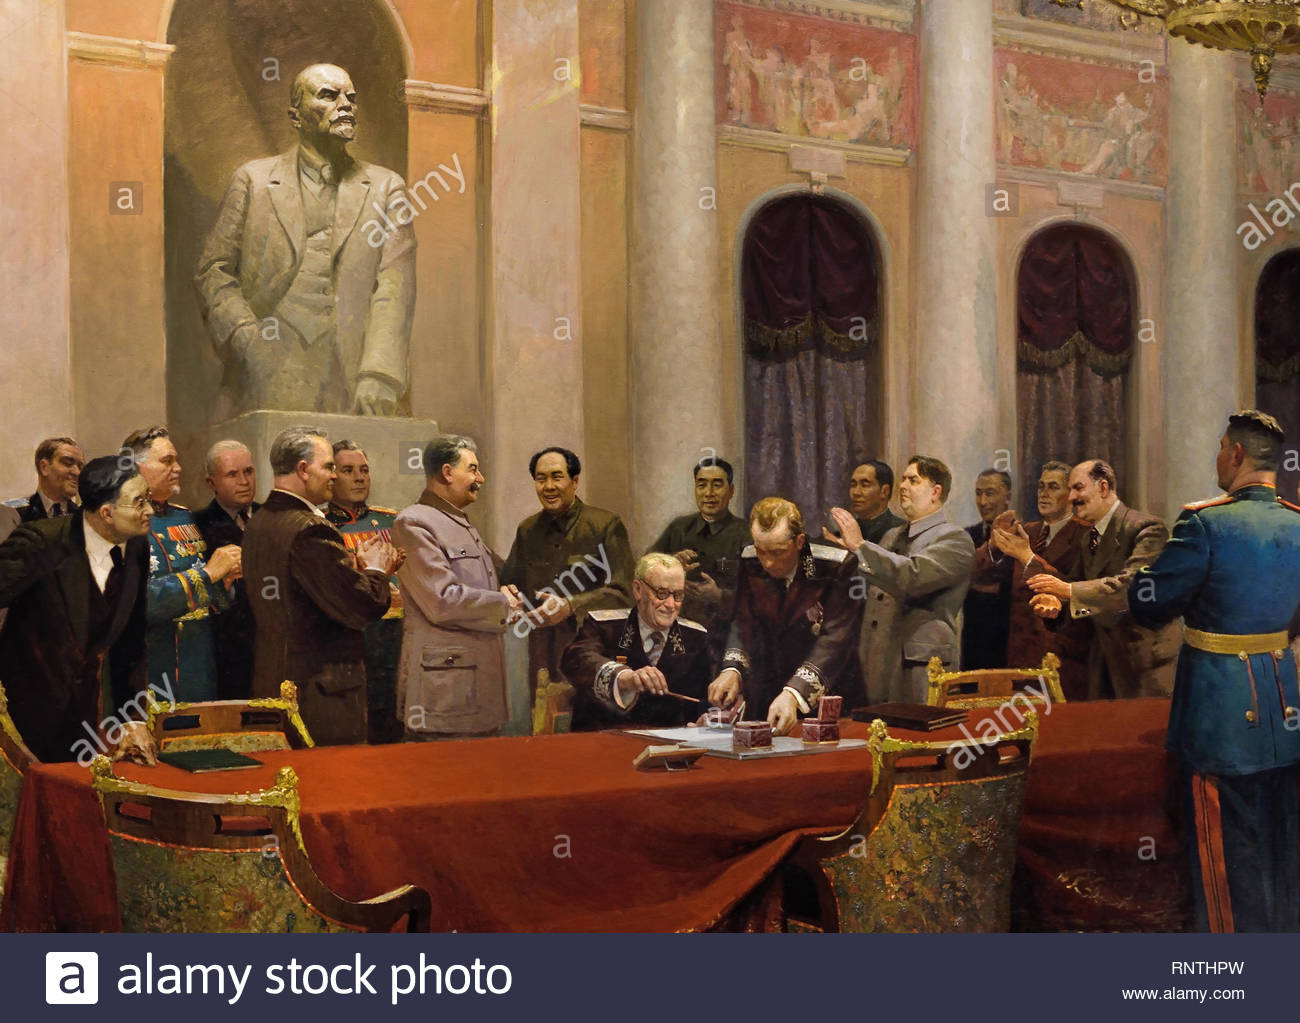 In the Name of Peace (The Signing of the Treaty of Friendship, Union and Mutual Assistance Between the Soviet Union and the People's Republic of China)' - 1950. Brigade leader was Viktor Vikhtinsky, People (standing, left to right): Nikita Khrushchev,  Vyacheslav Molotov, unknown general, Josef Stalin, Mao Tse-Tung, and Chou En-Lai. painter Viktor Vikhtinsky.  Soviet Union Communist Propaganda (Russia under Lenin and Stalin1921-1953 ). - Stock Image